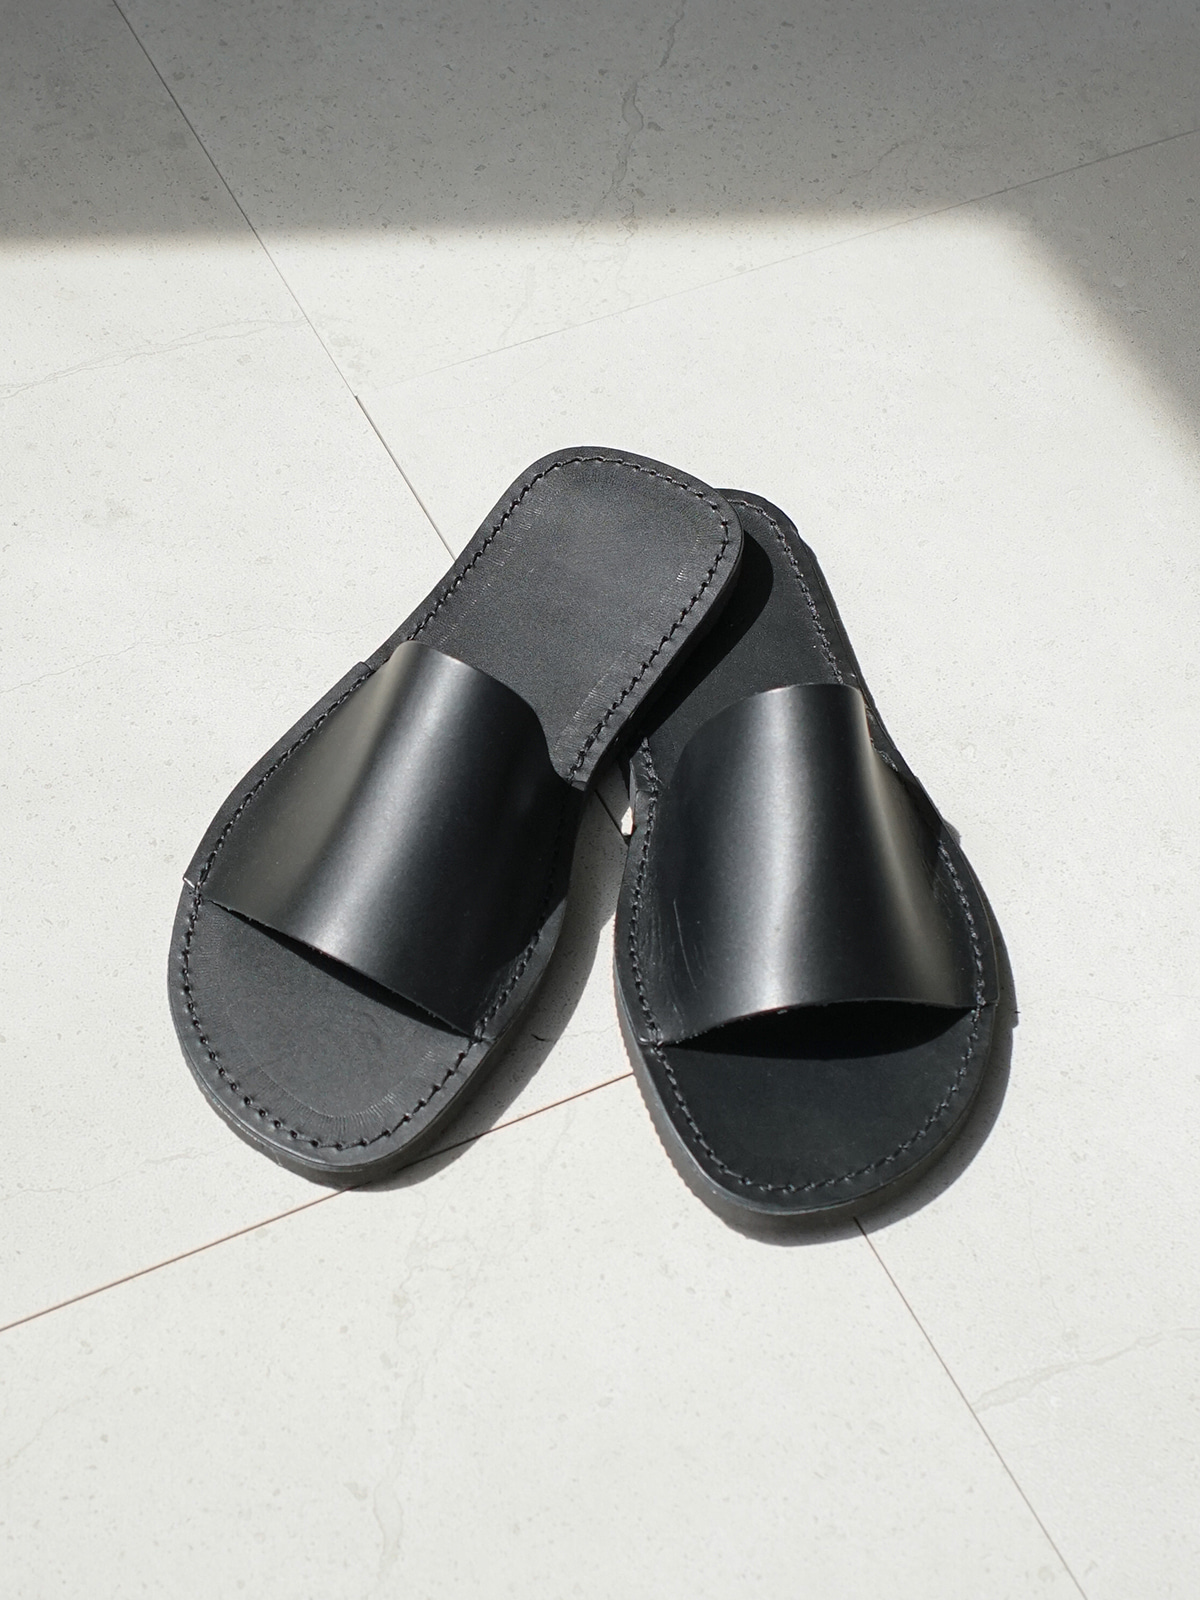 Cover Basic Sandals Black